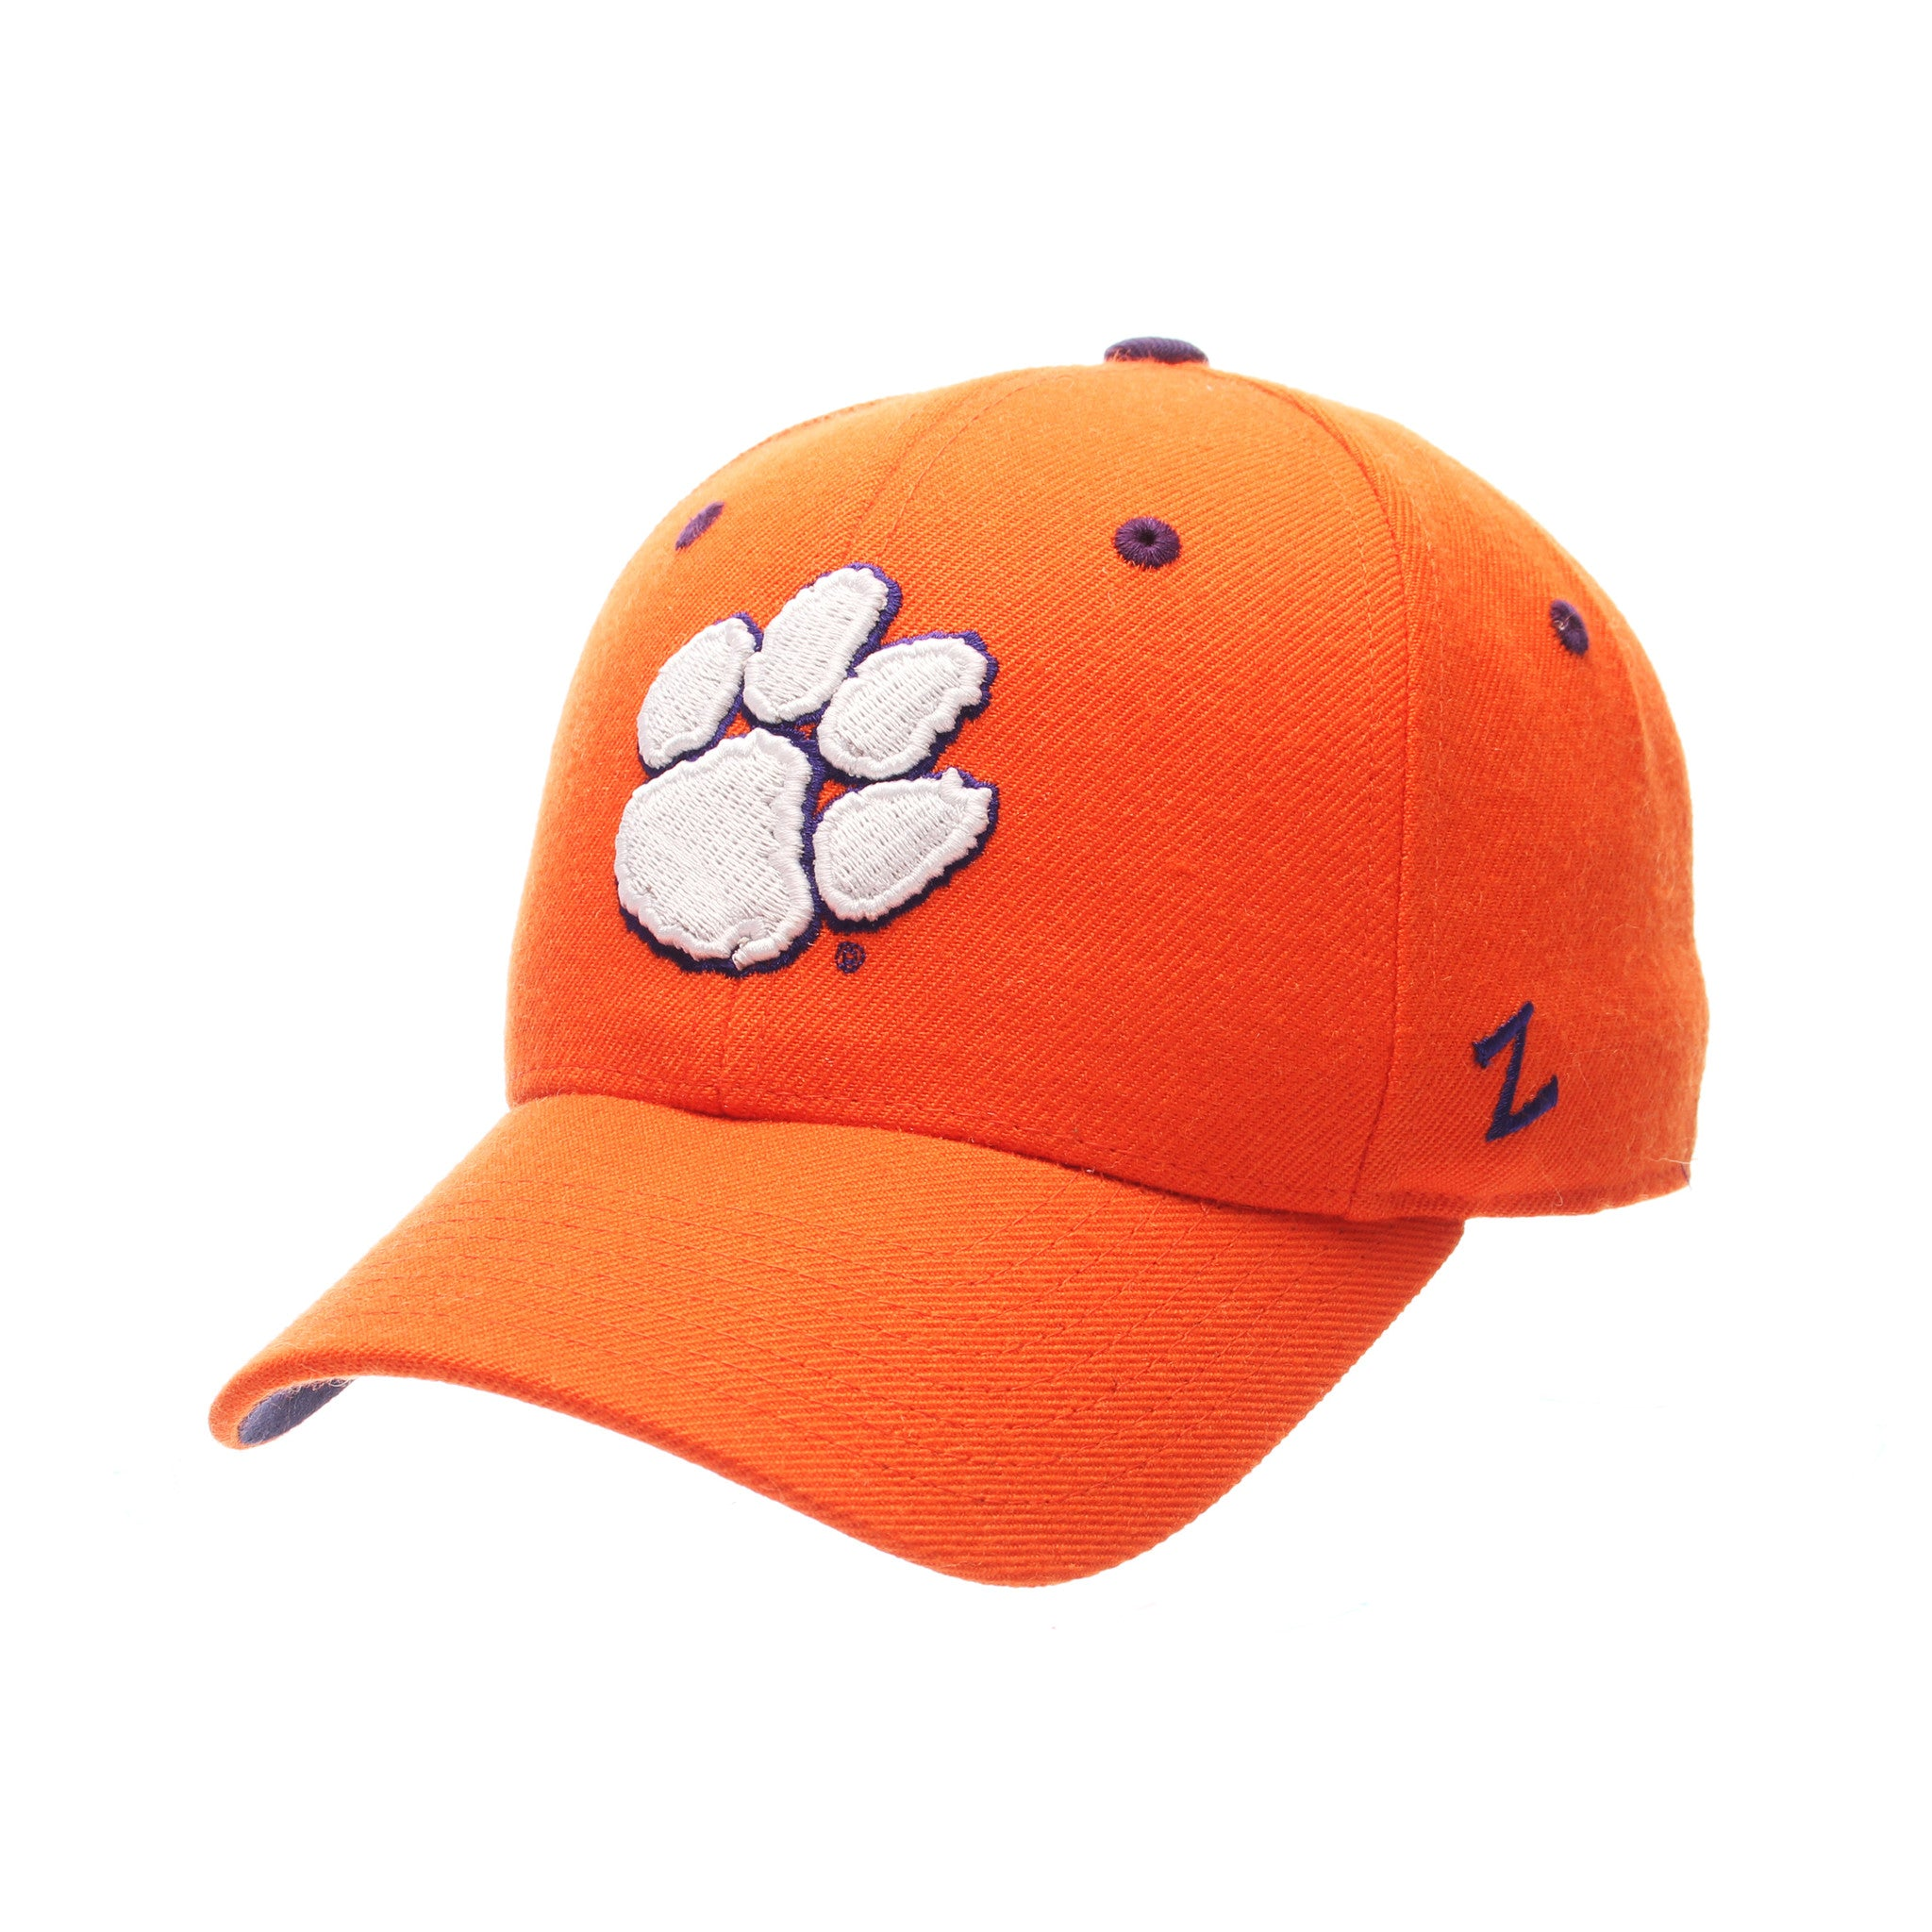 Clemson University DHS Standard (Low) (PAW) Orange Zwool Fitted hats by Zephyr